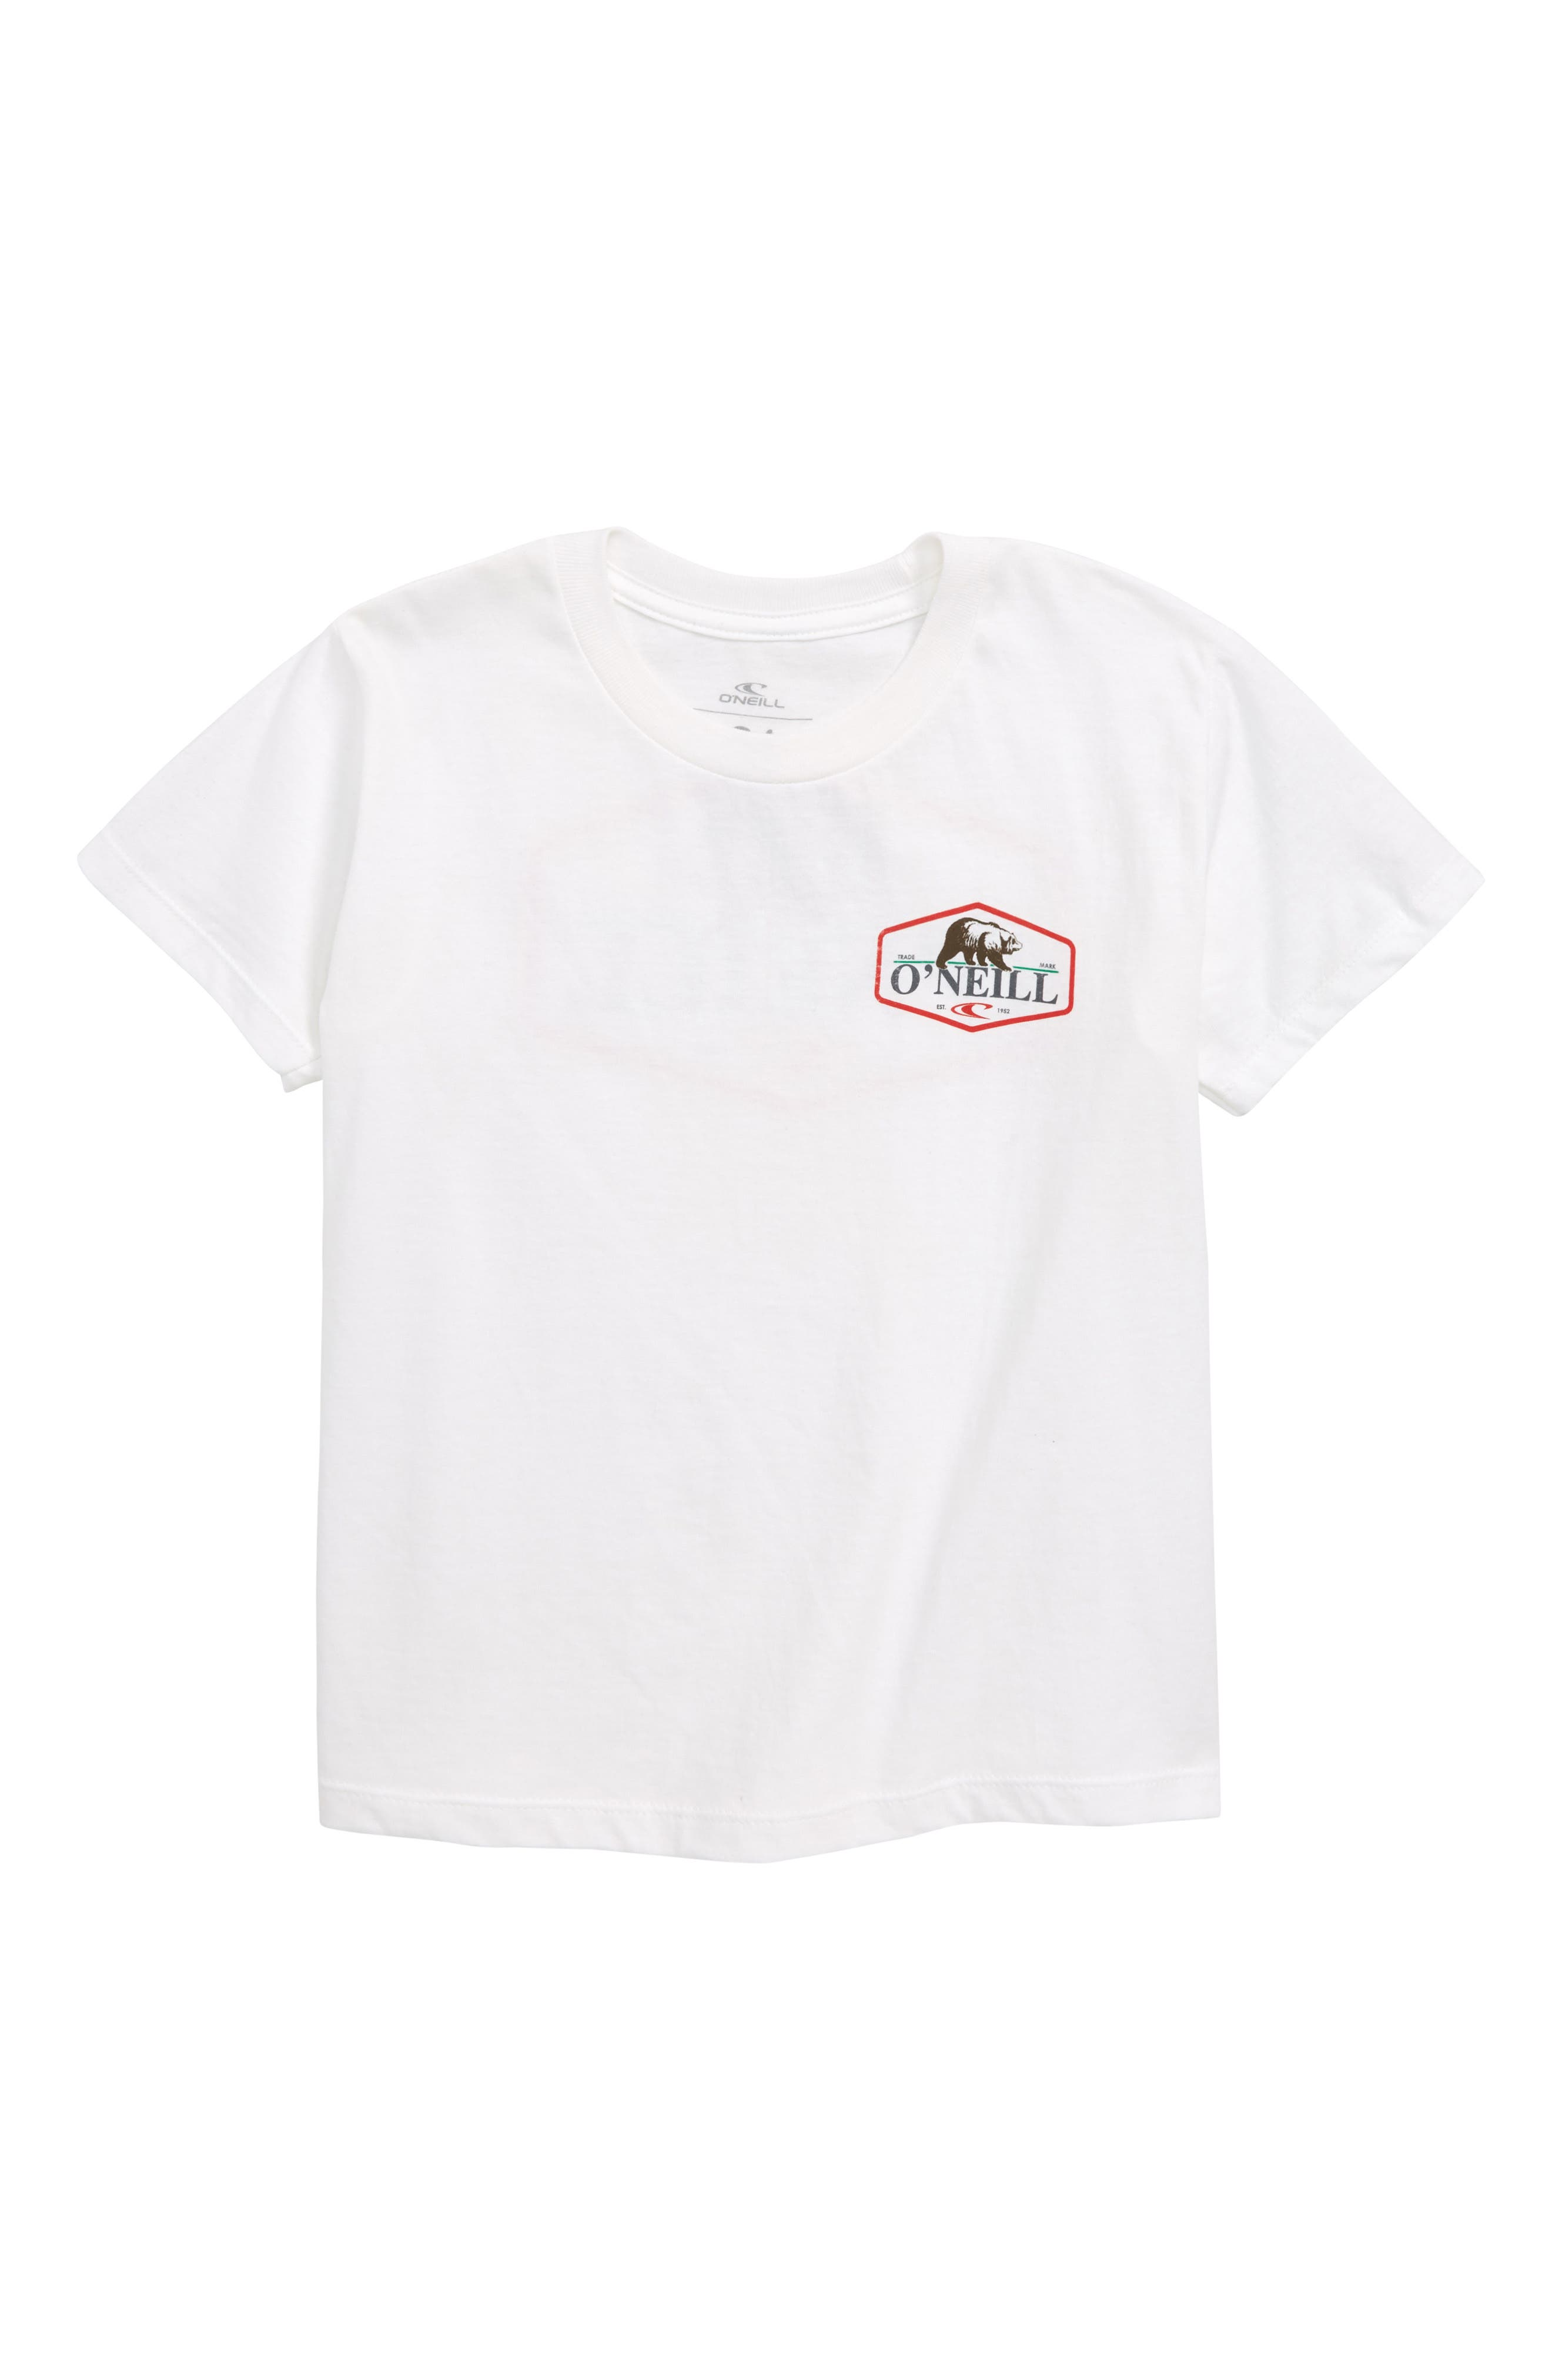 O'NEILL Bear T-Shirt, Main, color, 100